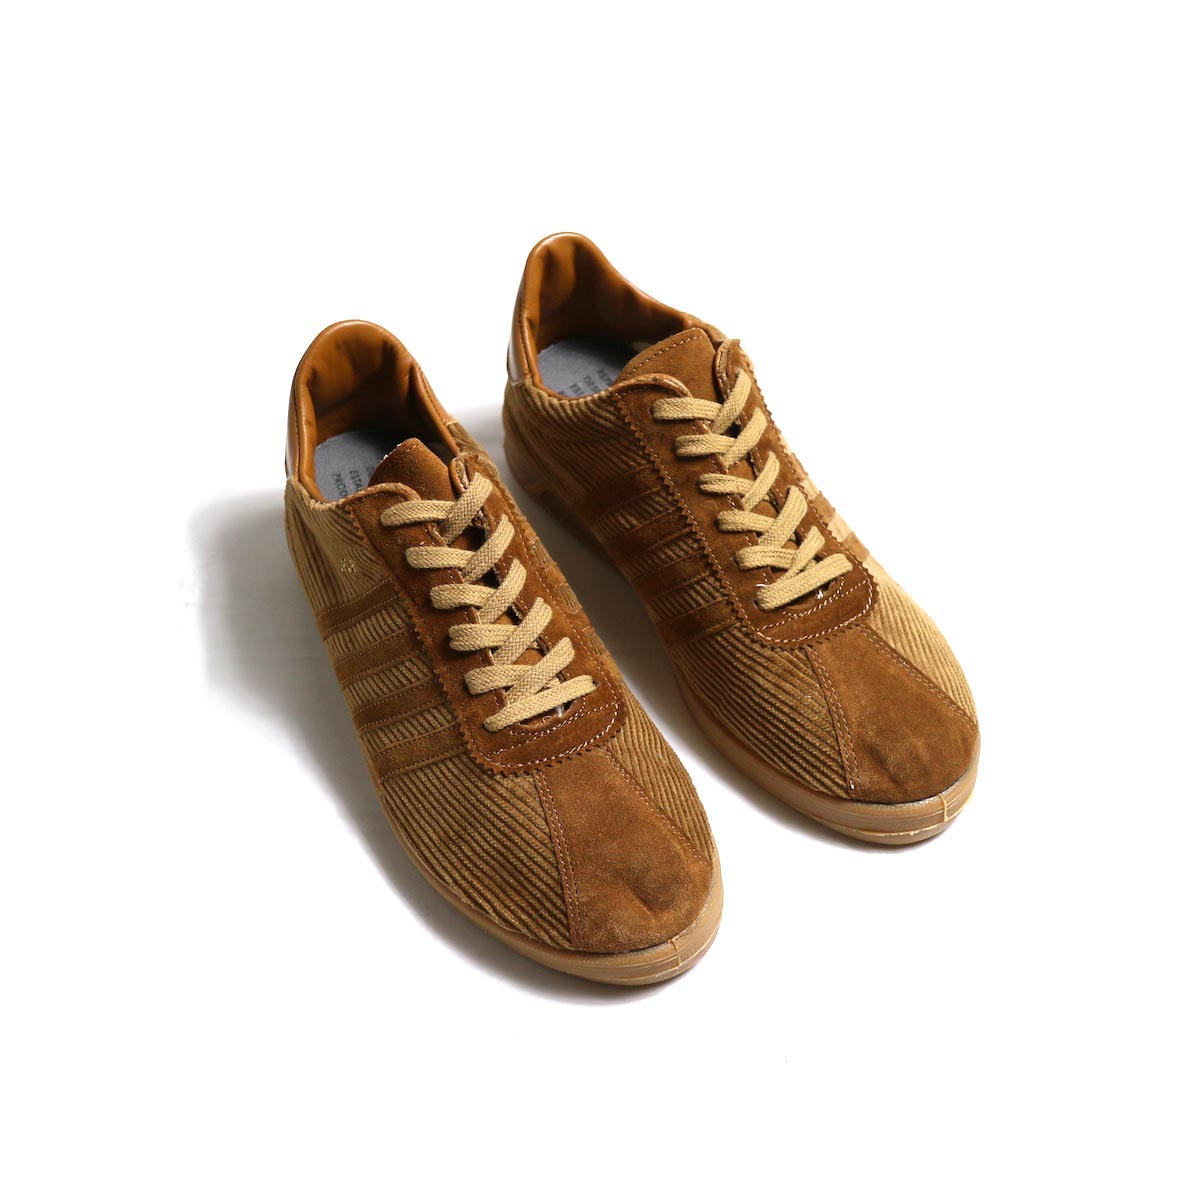 REPRODUCTION OF FOUND / RUSSIAN MILITARY TRAINER -Corduroy